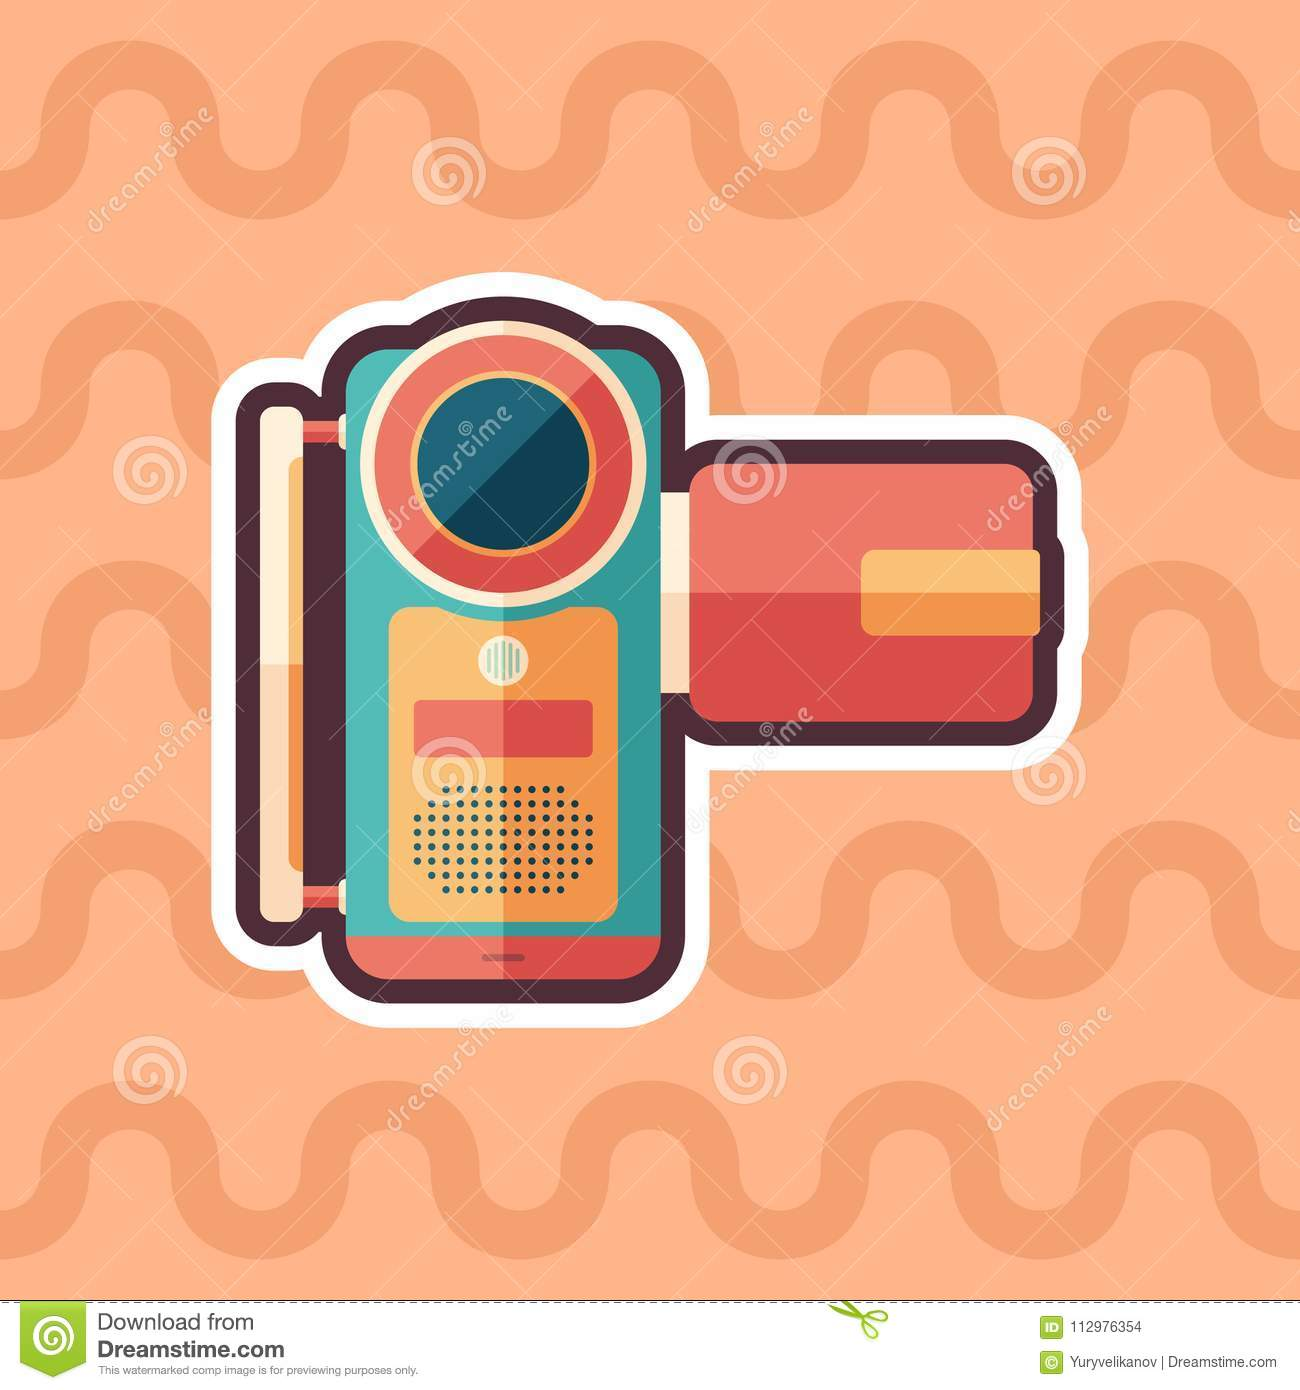 Portable digital video camera sticker flat icon with color background.